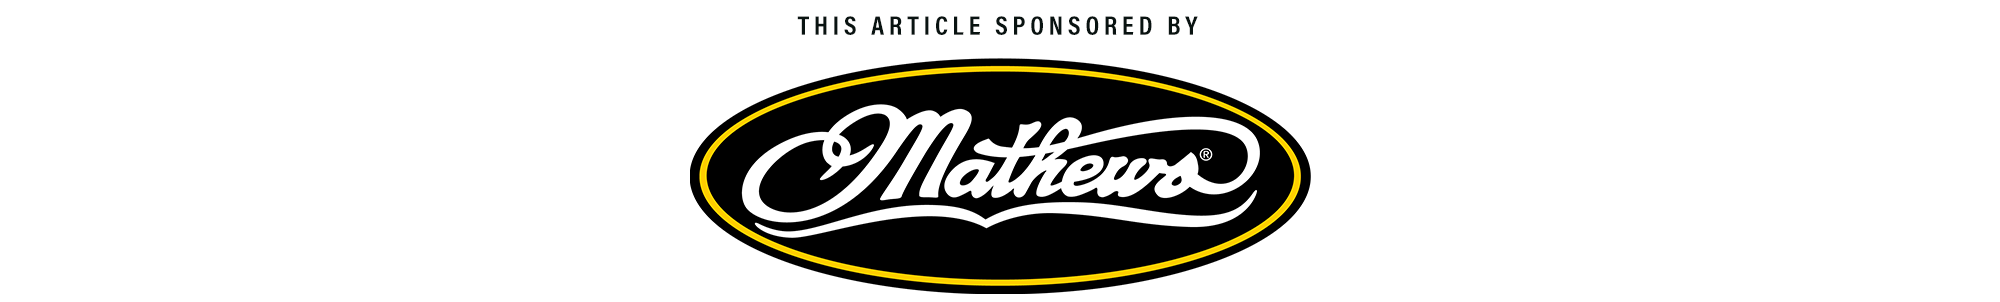 Mathews_Q4_2020 Sponsored Article